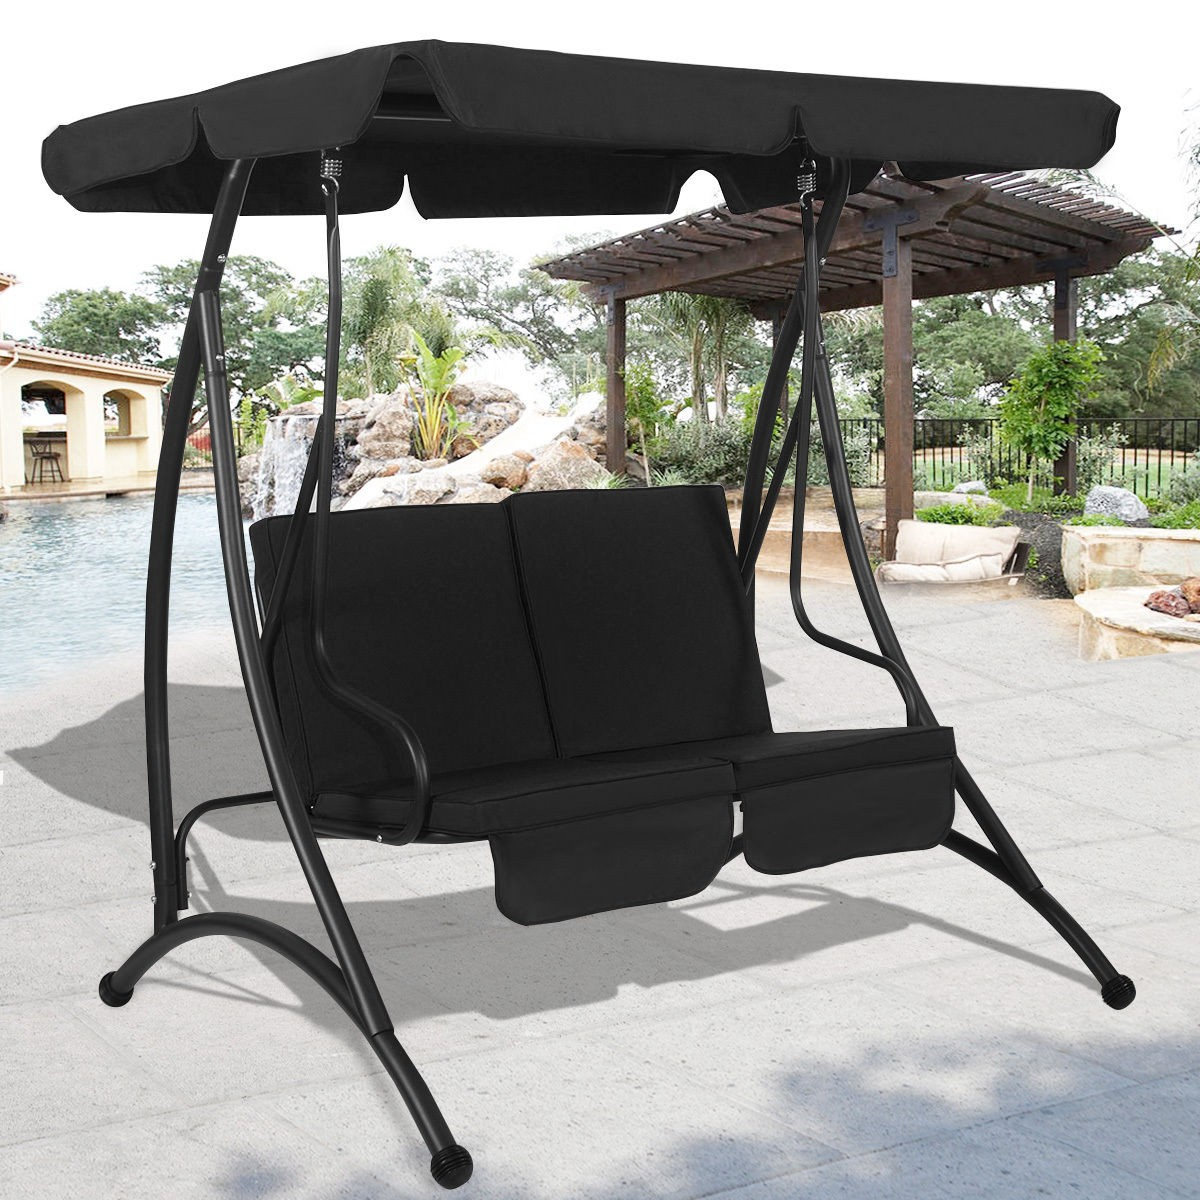 2 person canopy swing chair patio hammock seat cushioned furniture outdoor us ebay - Garden furniture swing seats ...